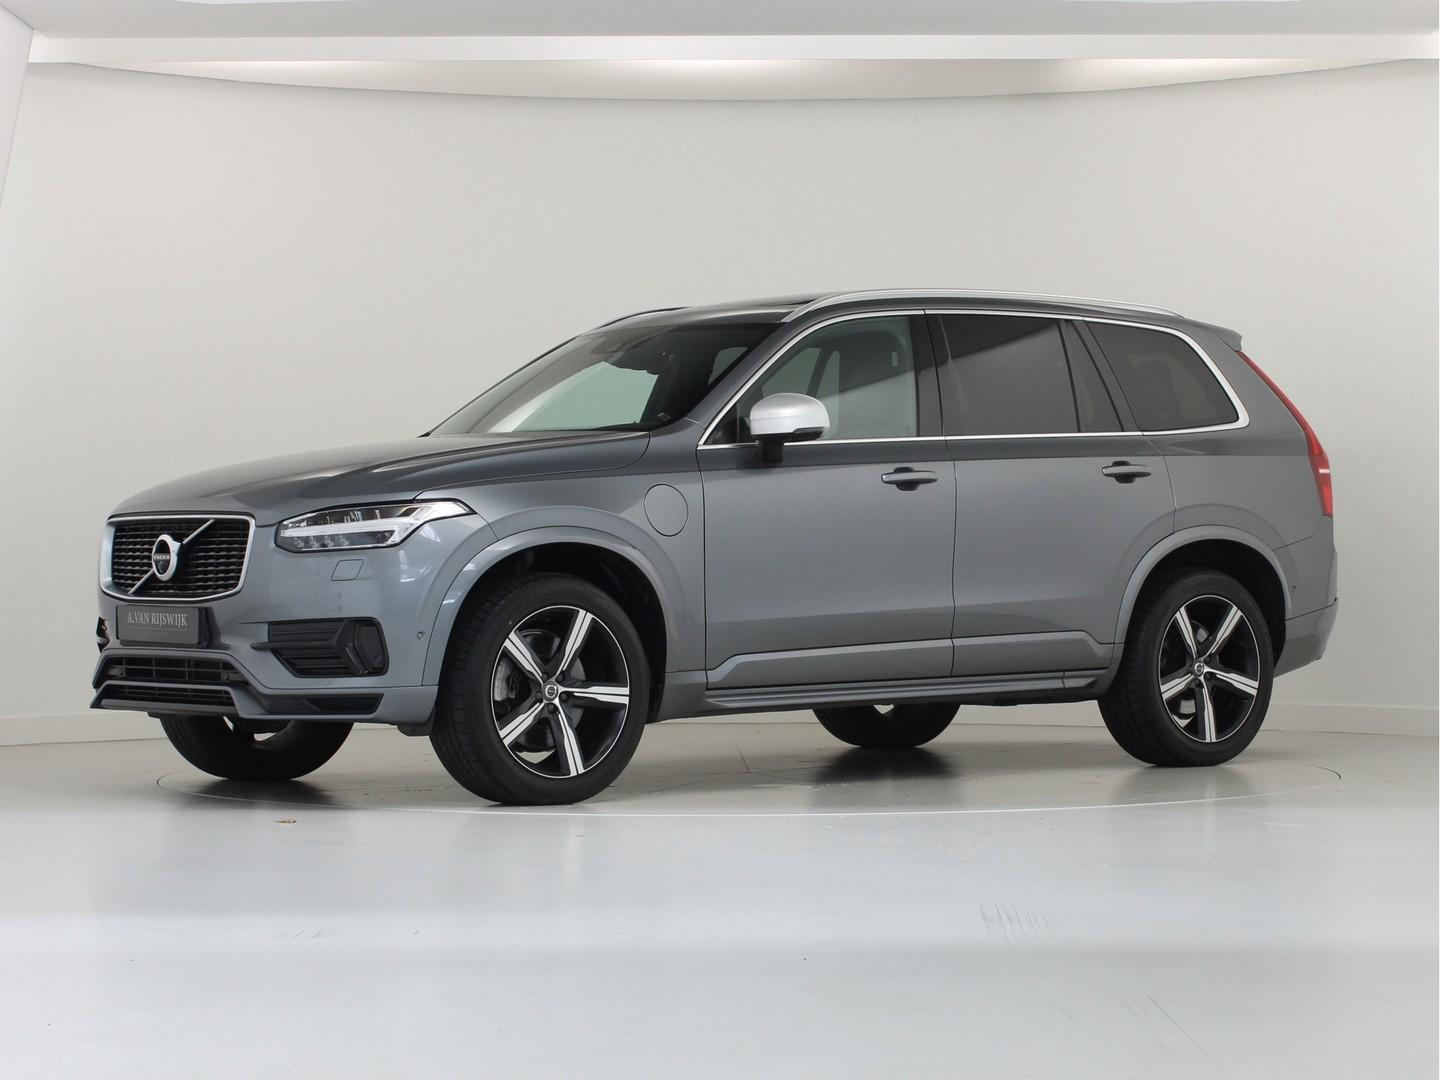 Volvo Xc90 2.0 t8 powershift twin engine awd r-design 7-pers. - excl. btw